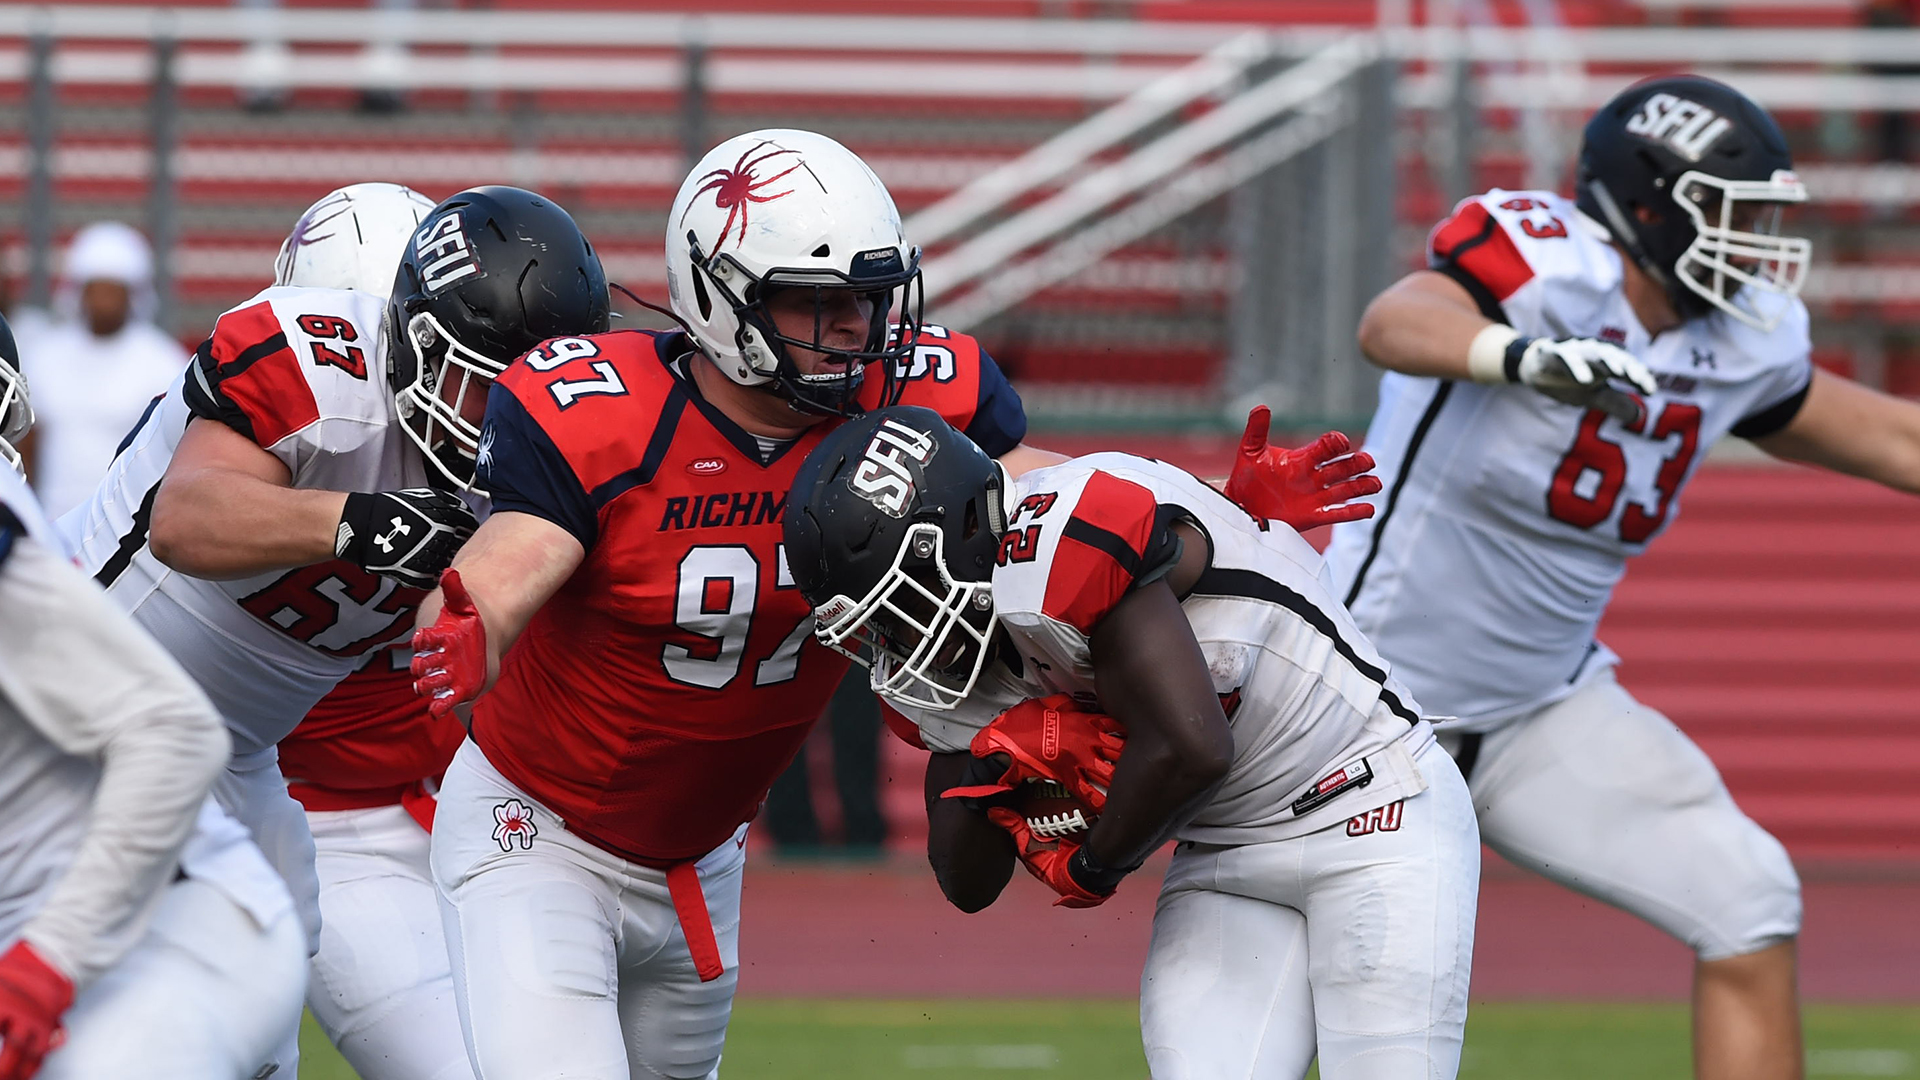 Football Wins With Two Touchdowns In The Final Seconds At Saint